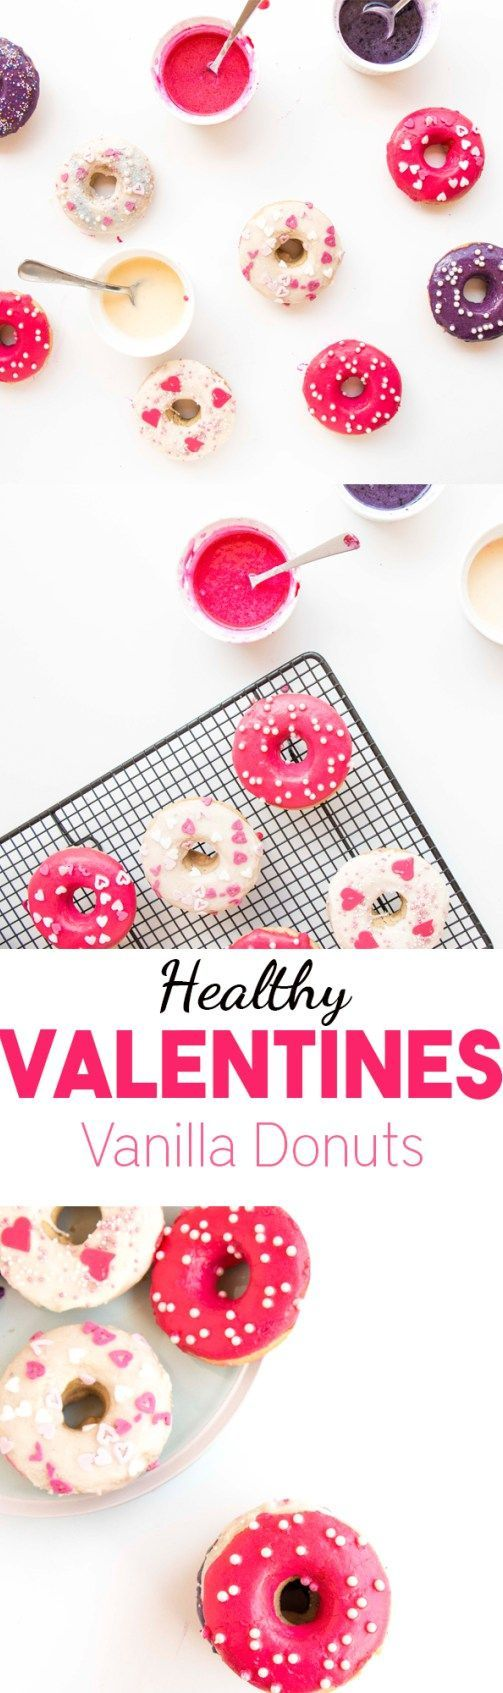 Healthy Valentines Vanilla Donuts - A delicious, beautiful and healthy valentines dessert recipe that you can whip up in minutes. #healthy #valentinesday